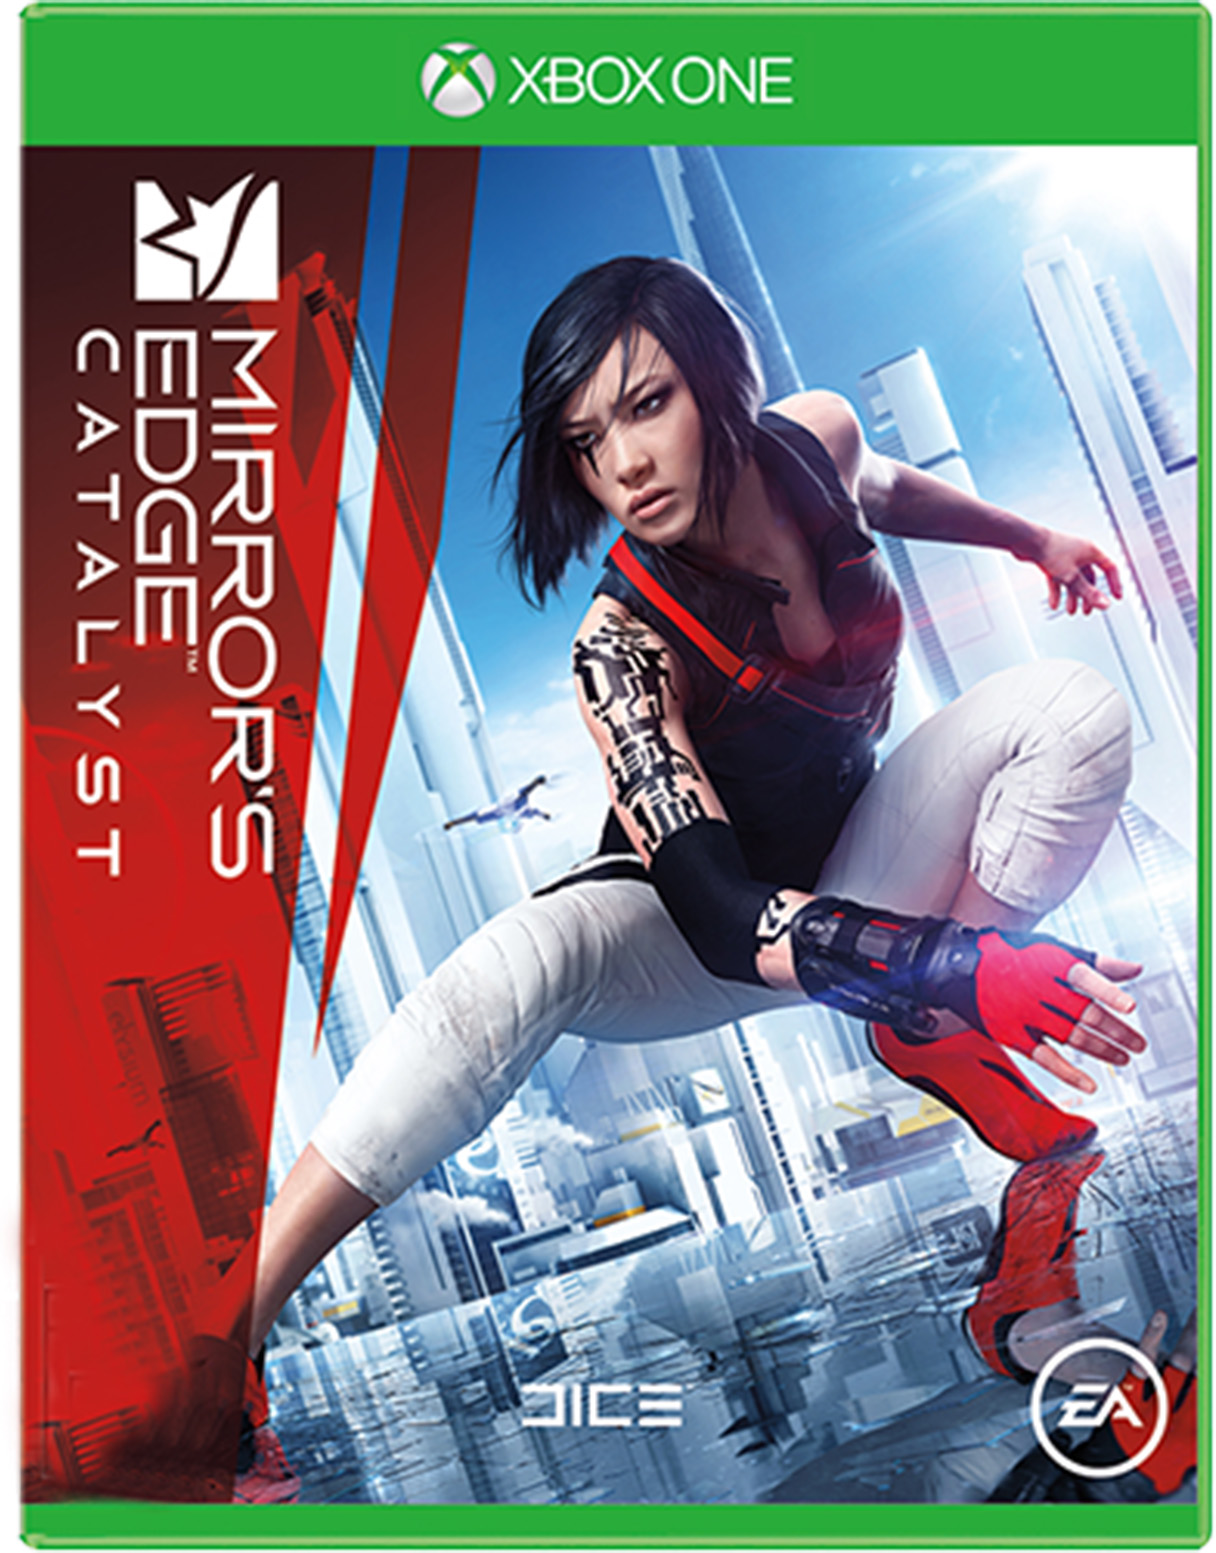 Mirror's Edge Catalyst for Xbox One